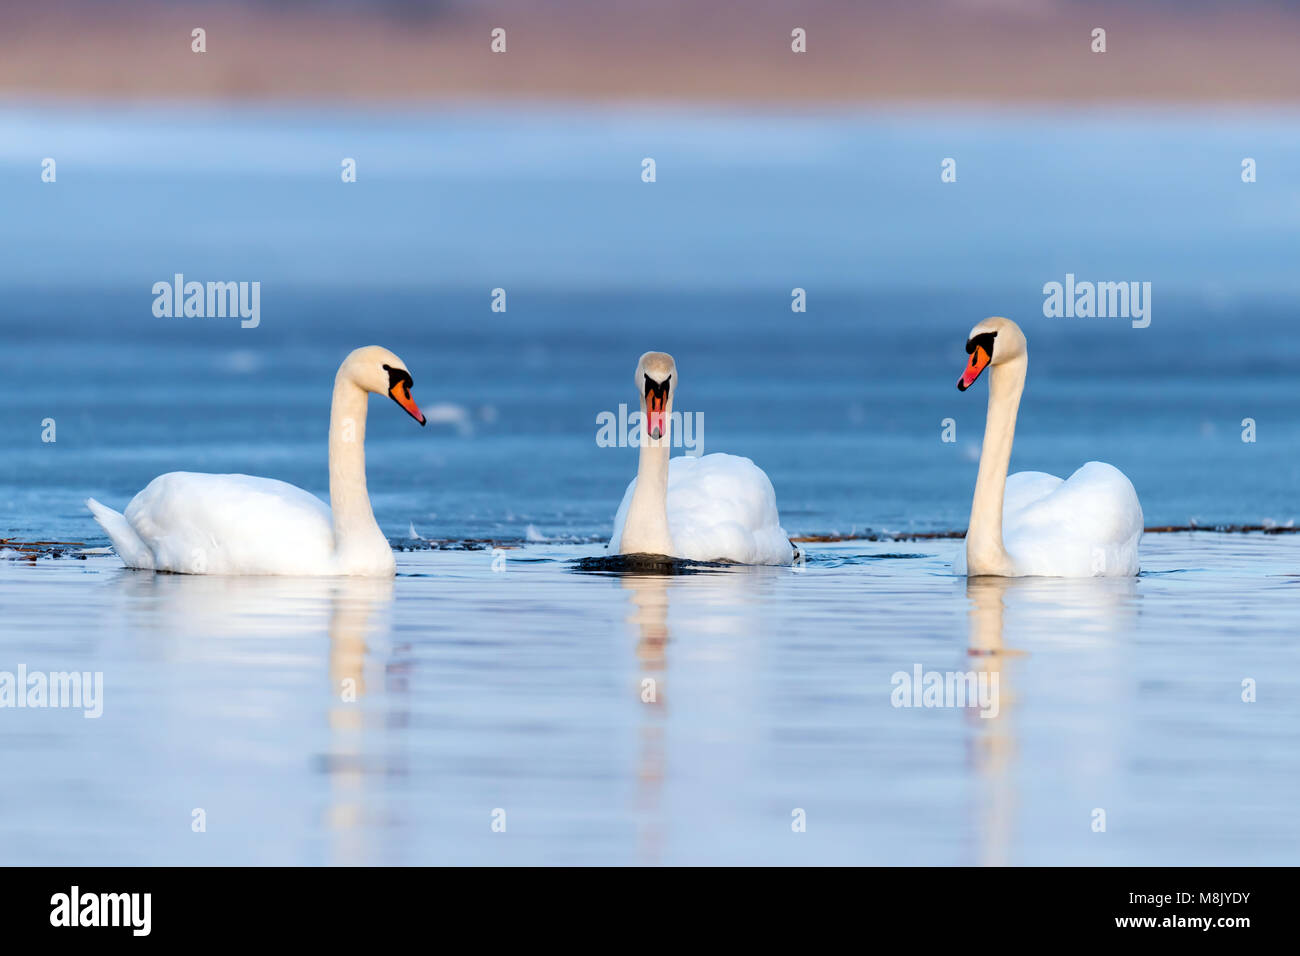 Three swans on the lake. Swan reflection in water - Stock Image